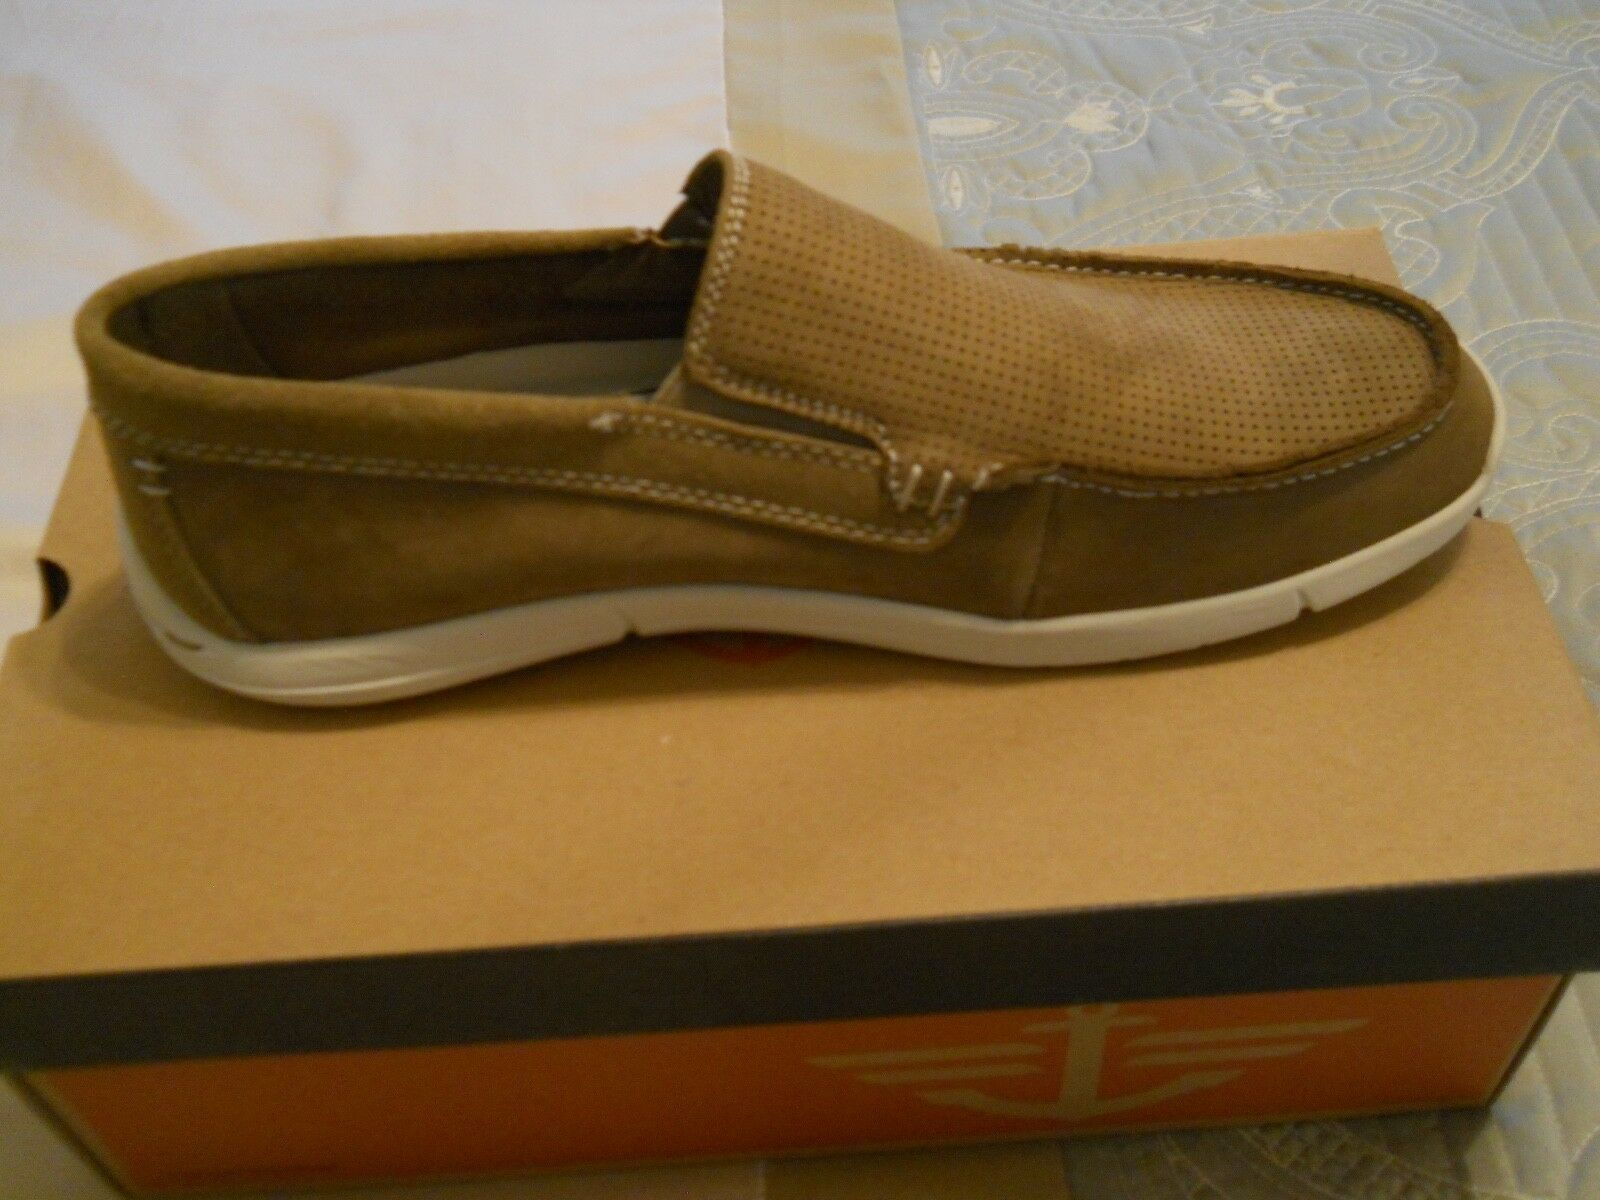 Paul Smith chaussure s Bryce cuir chaussure Ps Logo sur le c